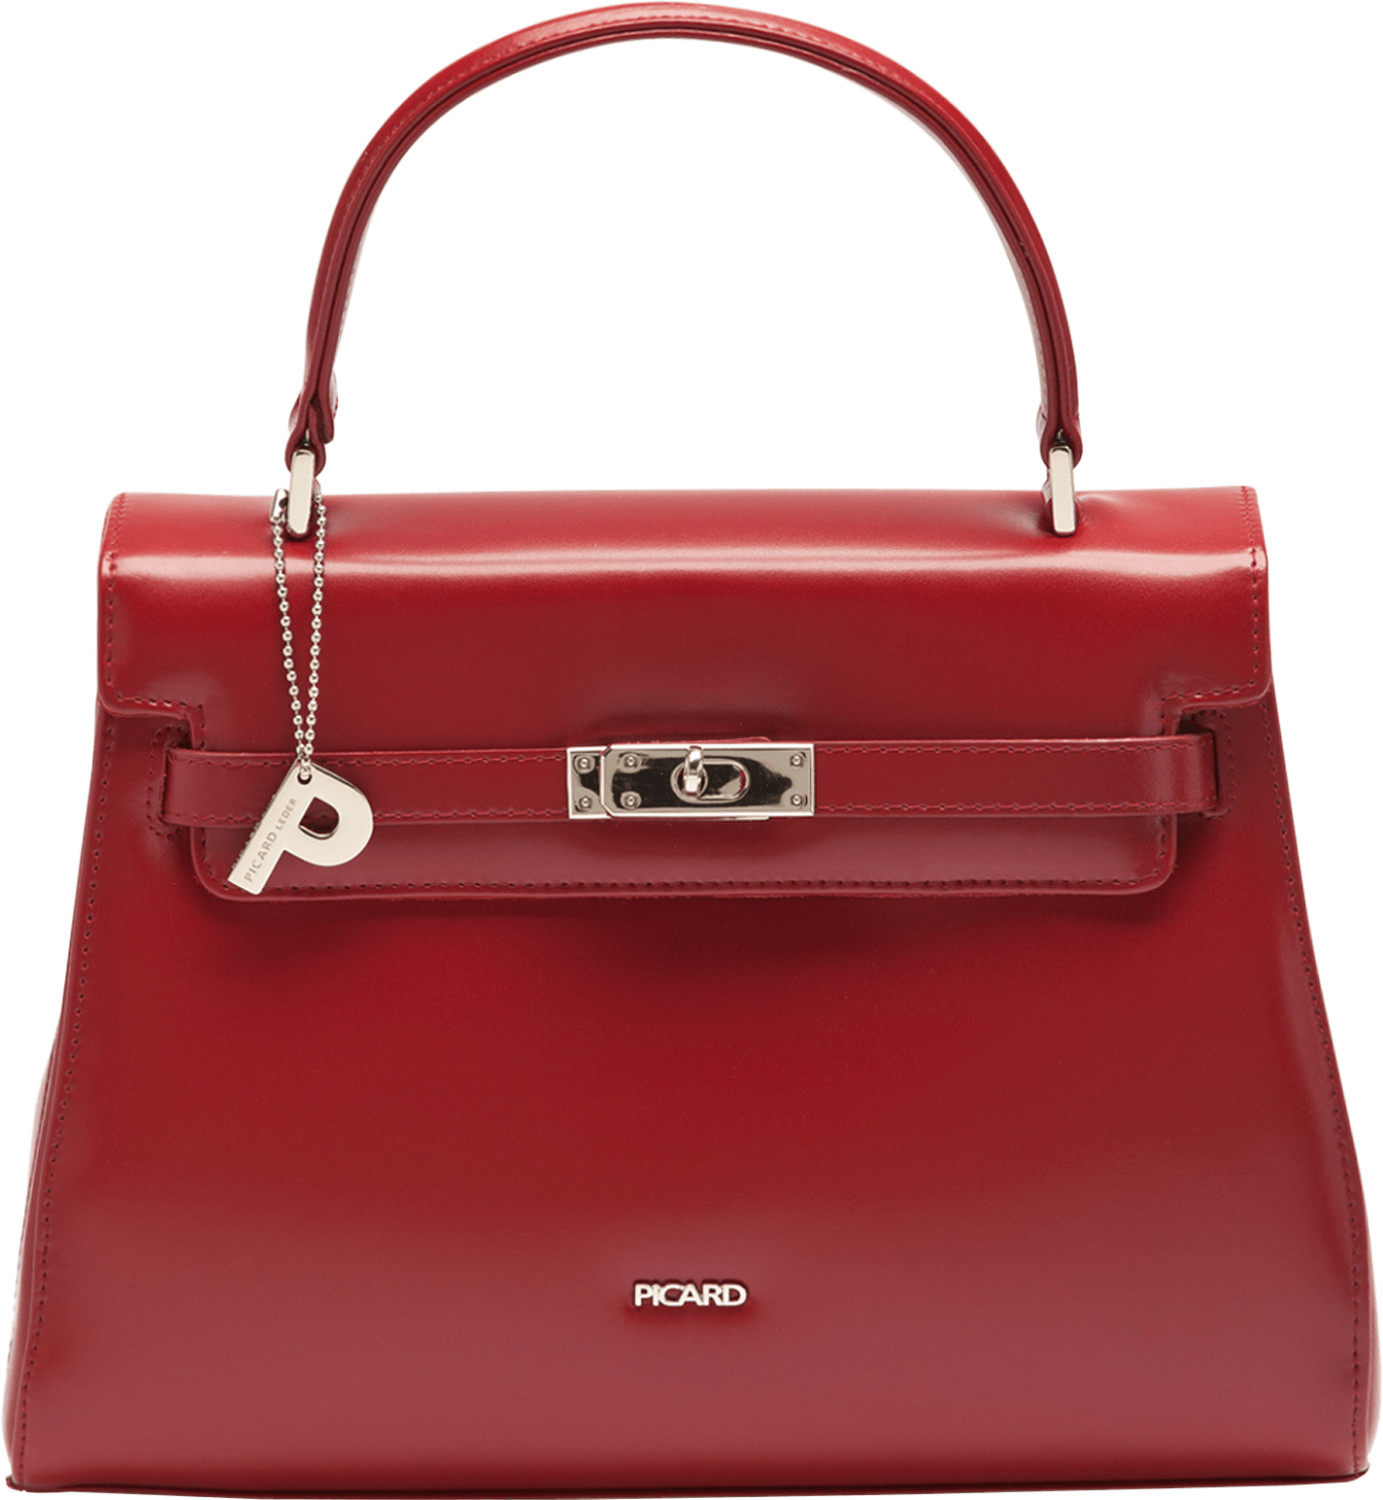 Picard Berlin red (4704)